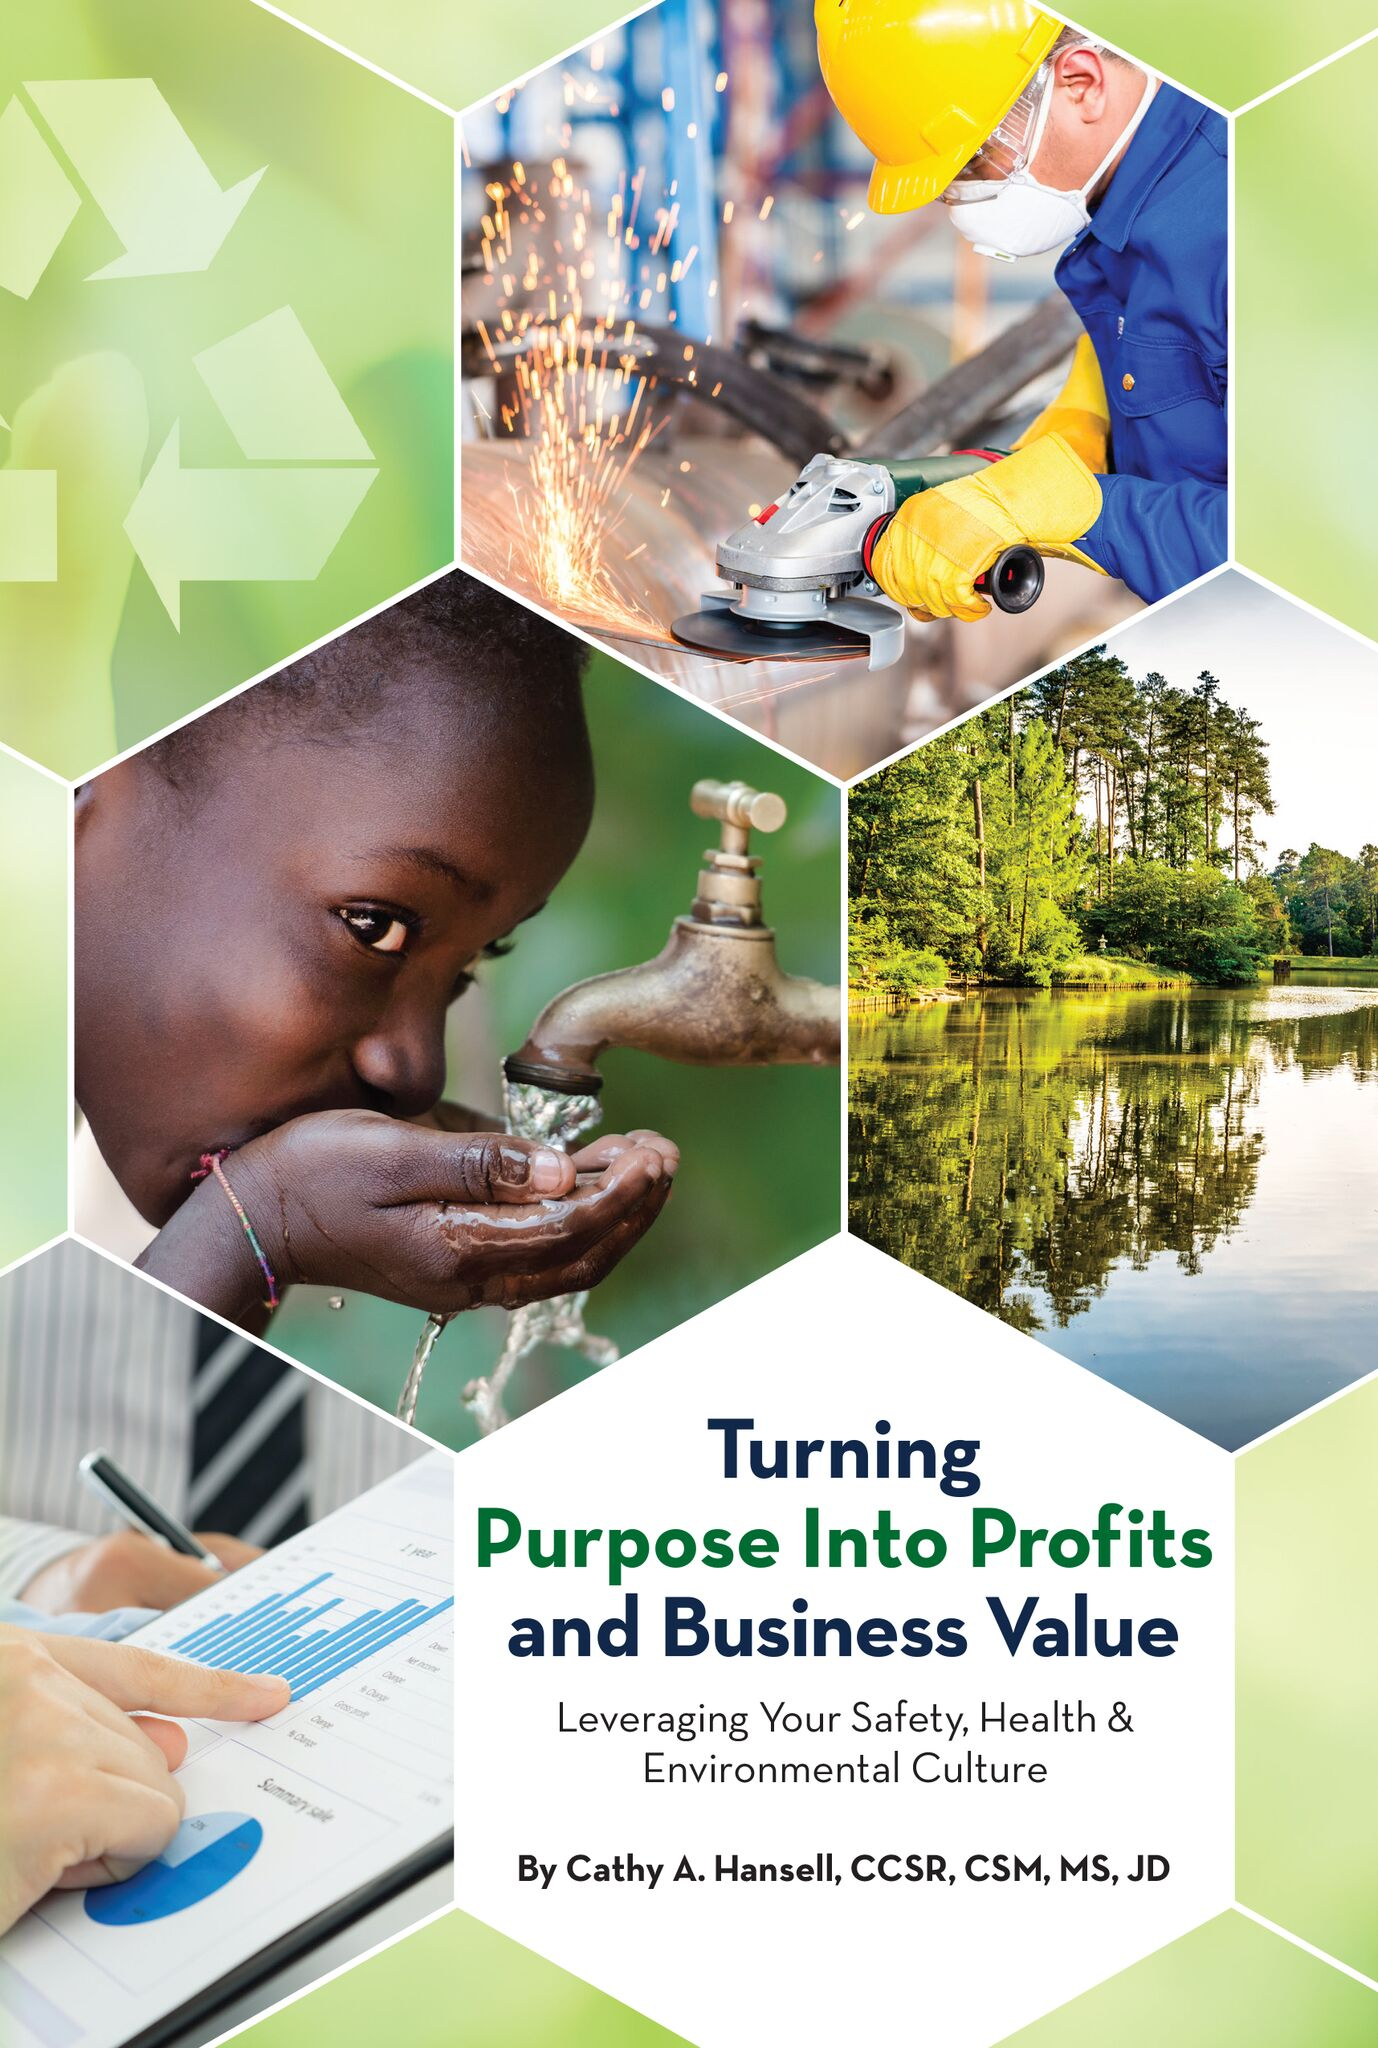 Turning Purpose Into Profits and Business Value